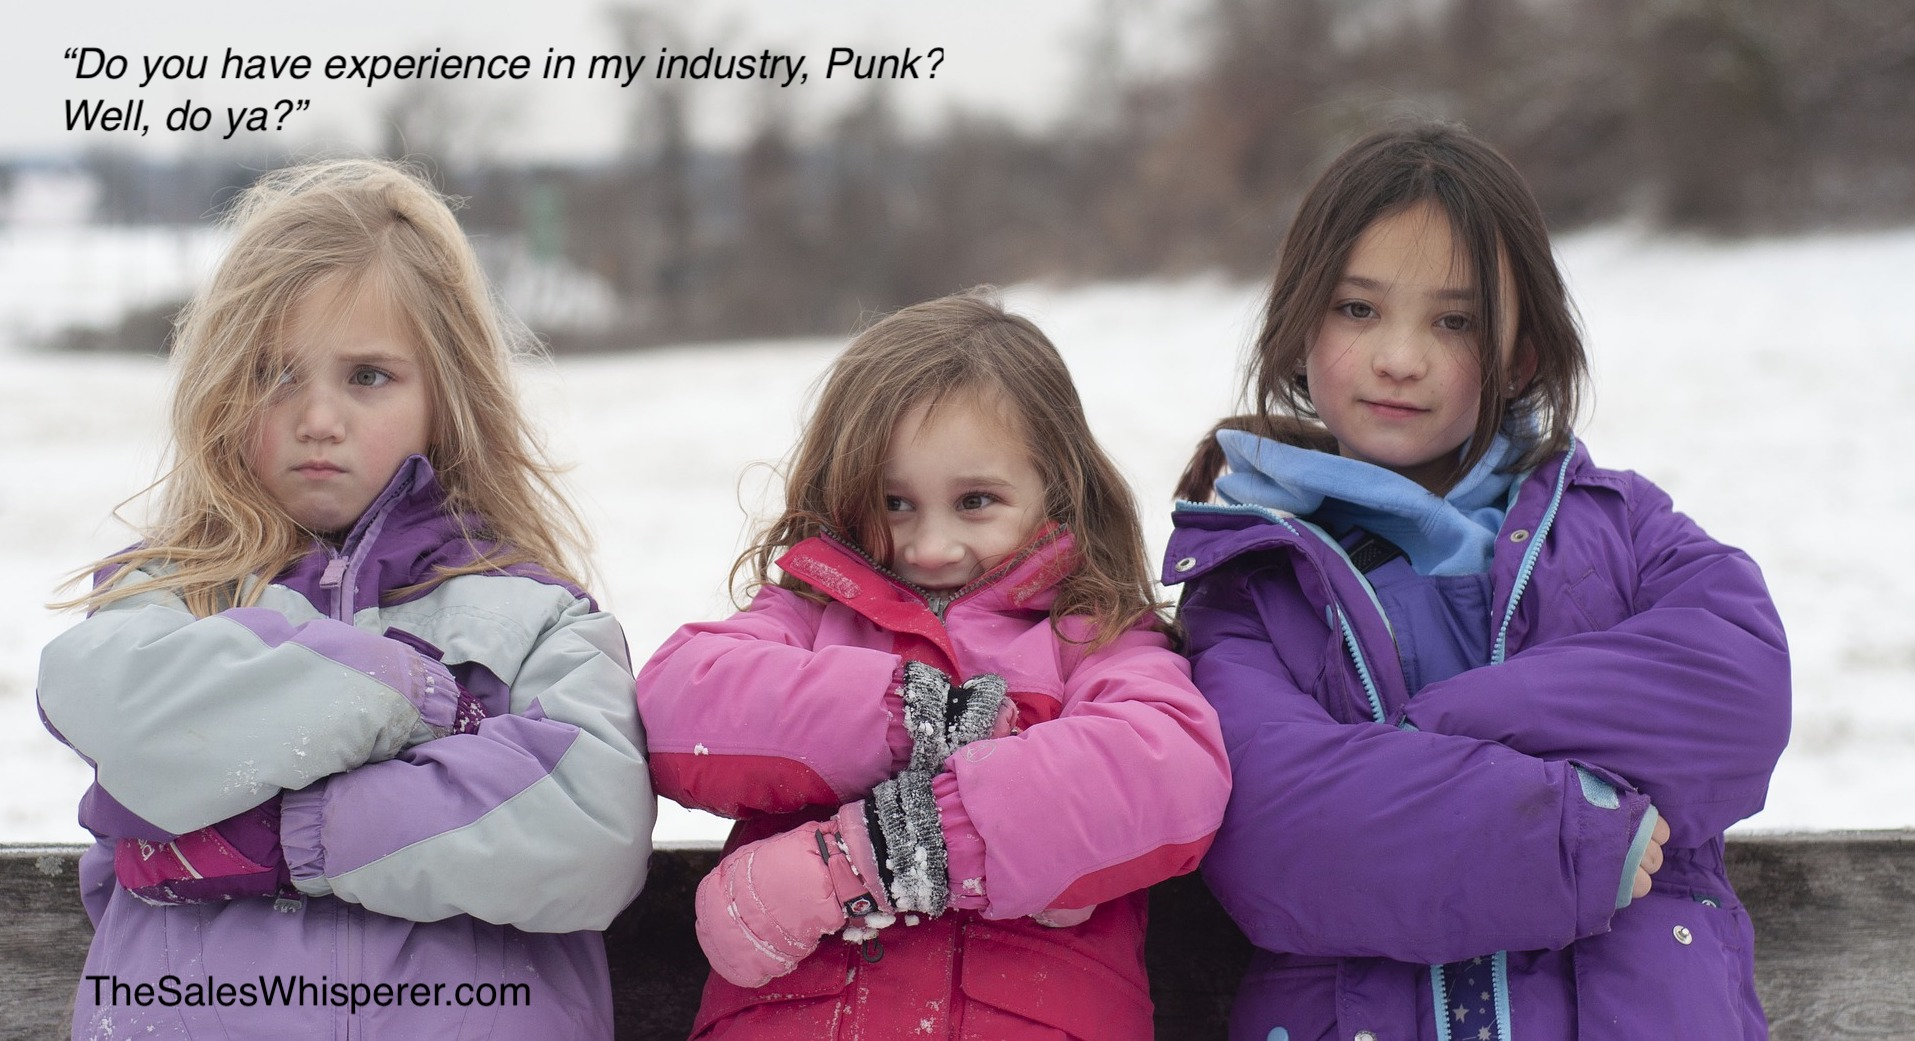 sisters-arms-folded-industry-experience-wes-schaeffer